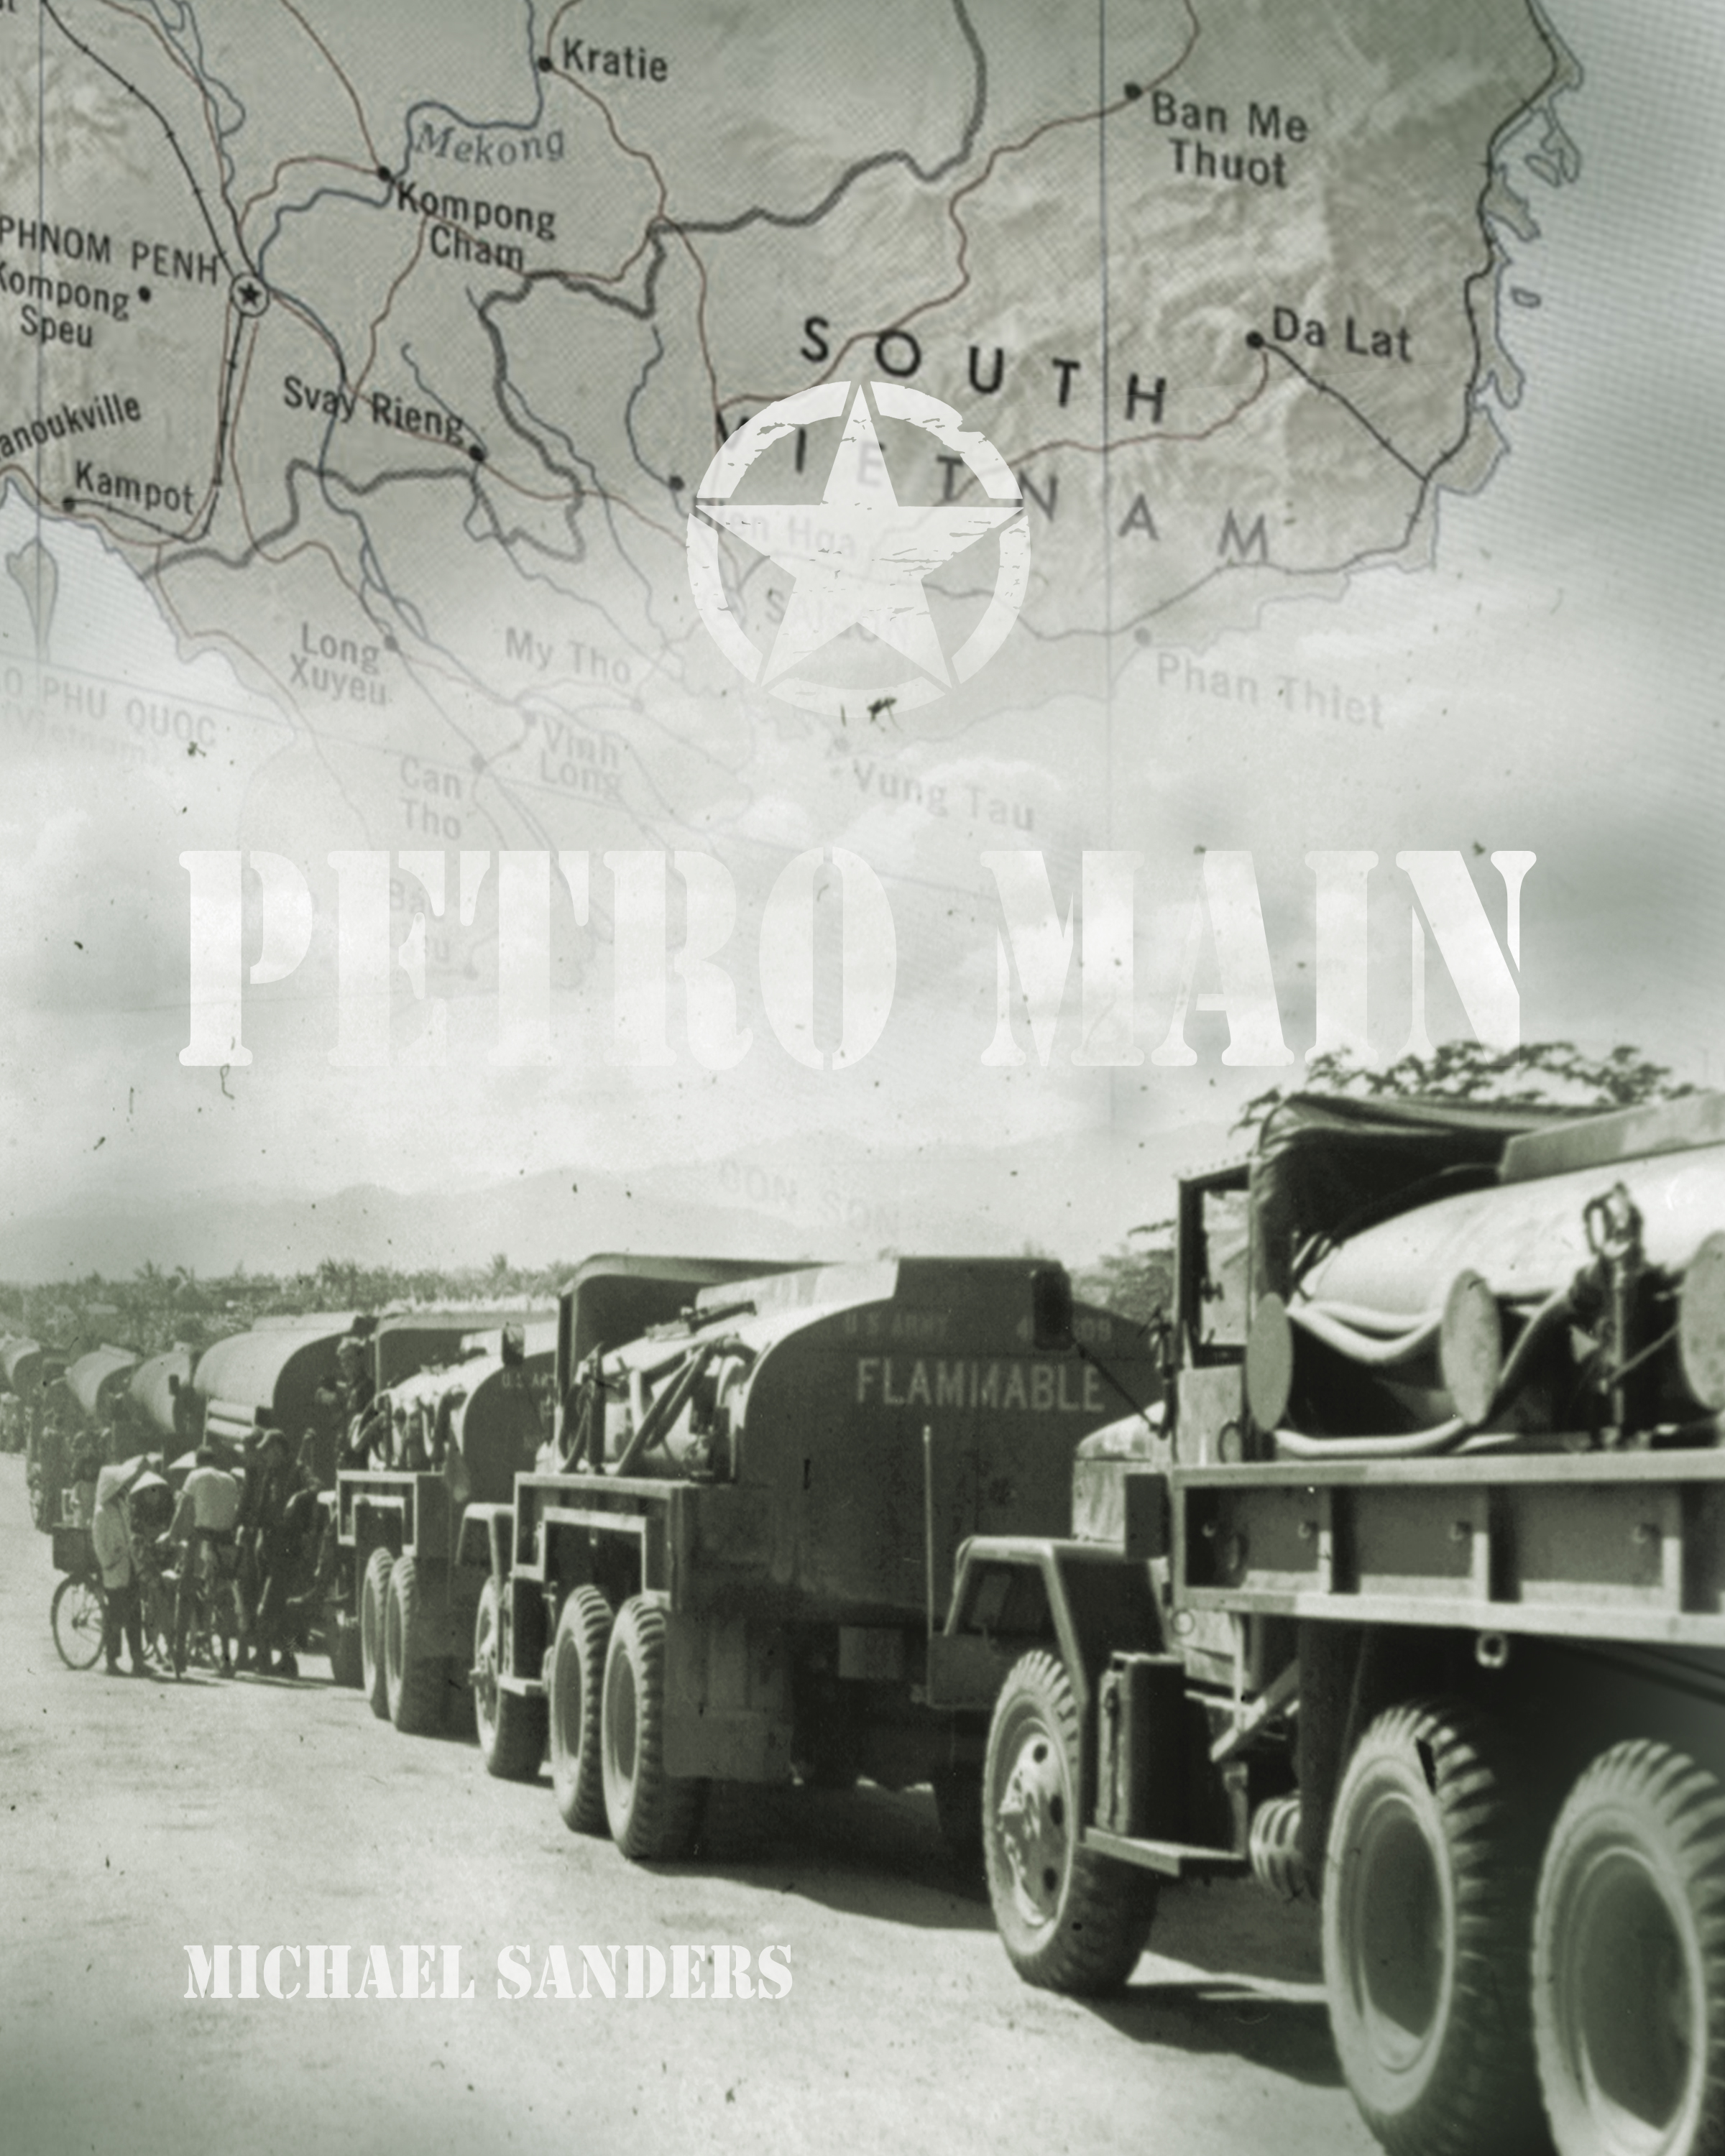 Petro Main book cover design